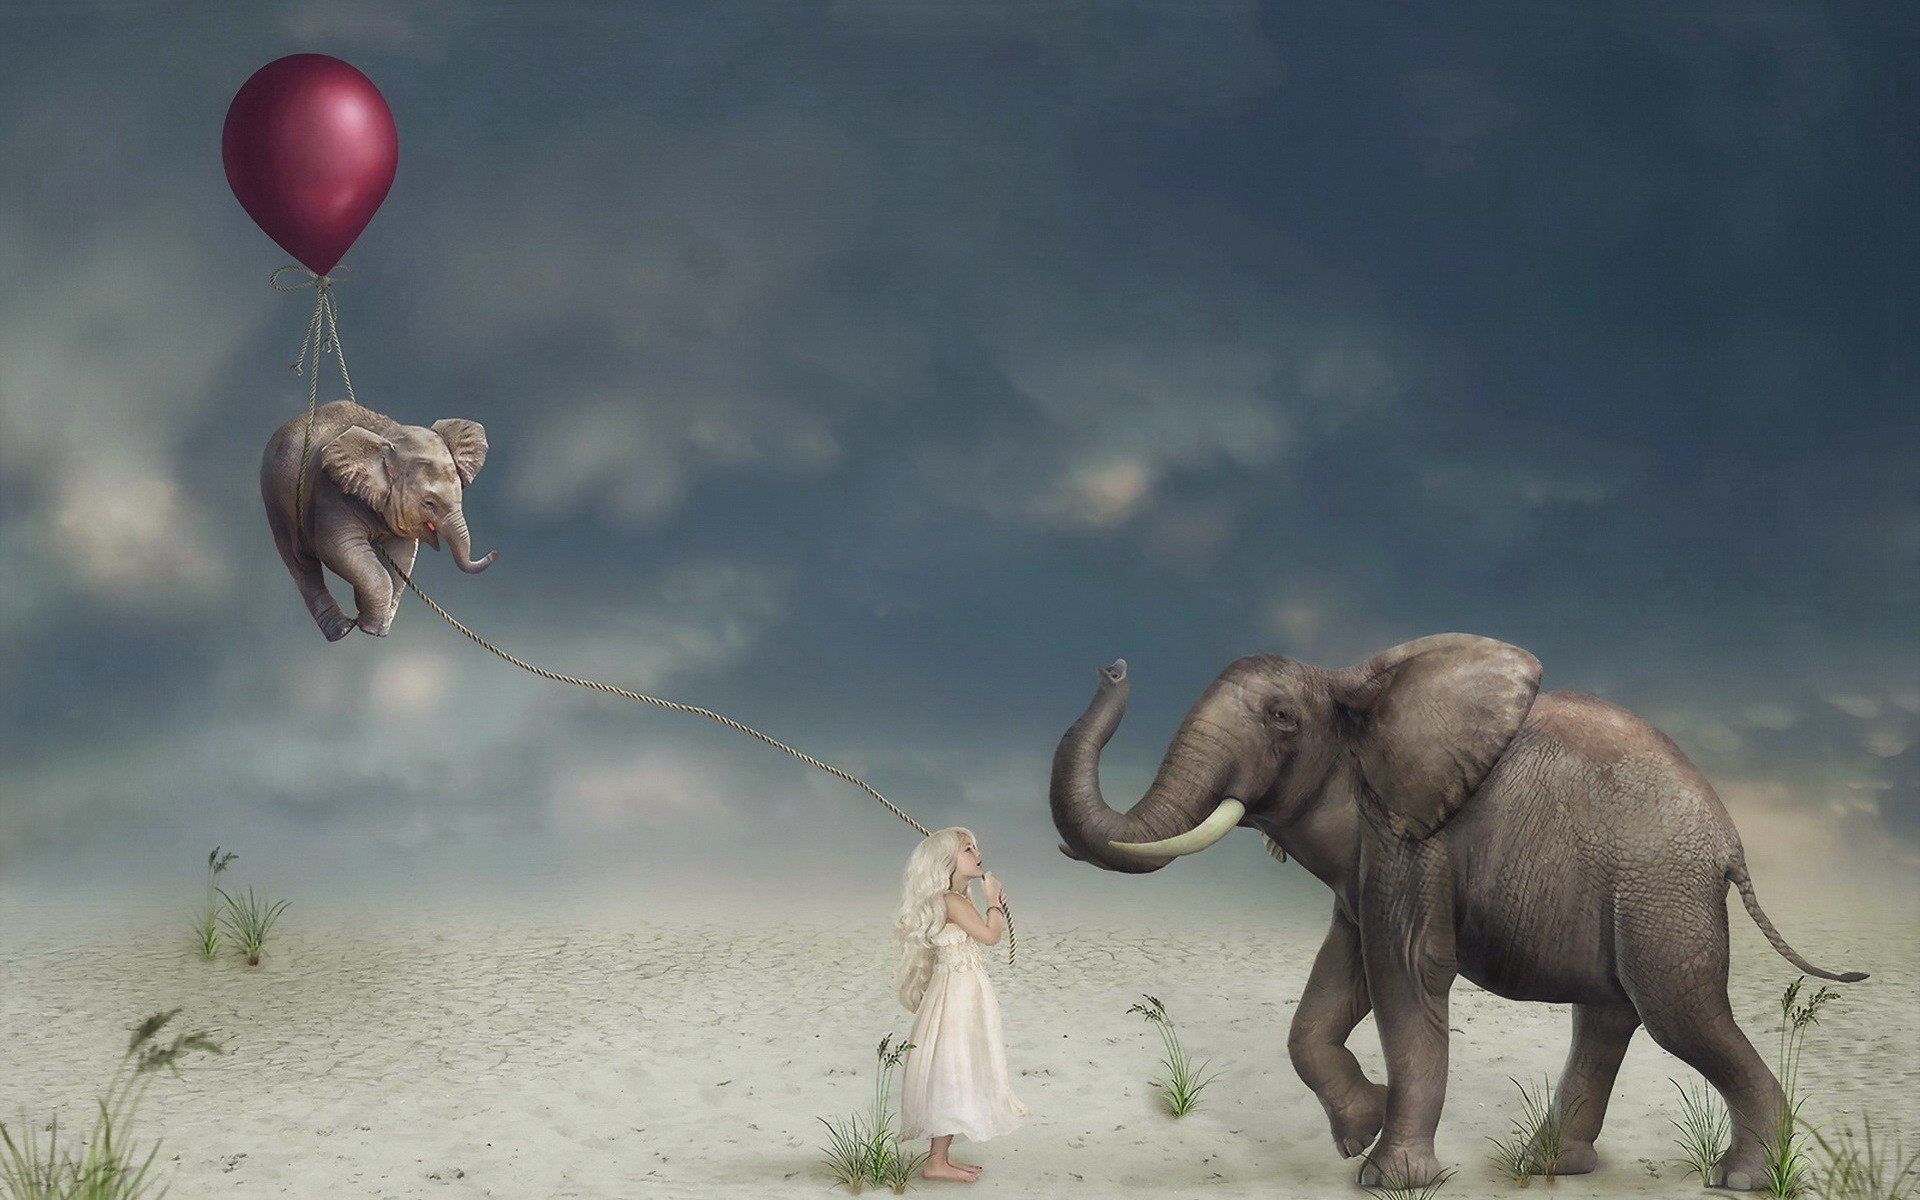 Baby Girl Wallpapers For Mobile Children Artwork Balloon Elephant Animals Surreal Hd